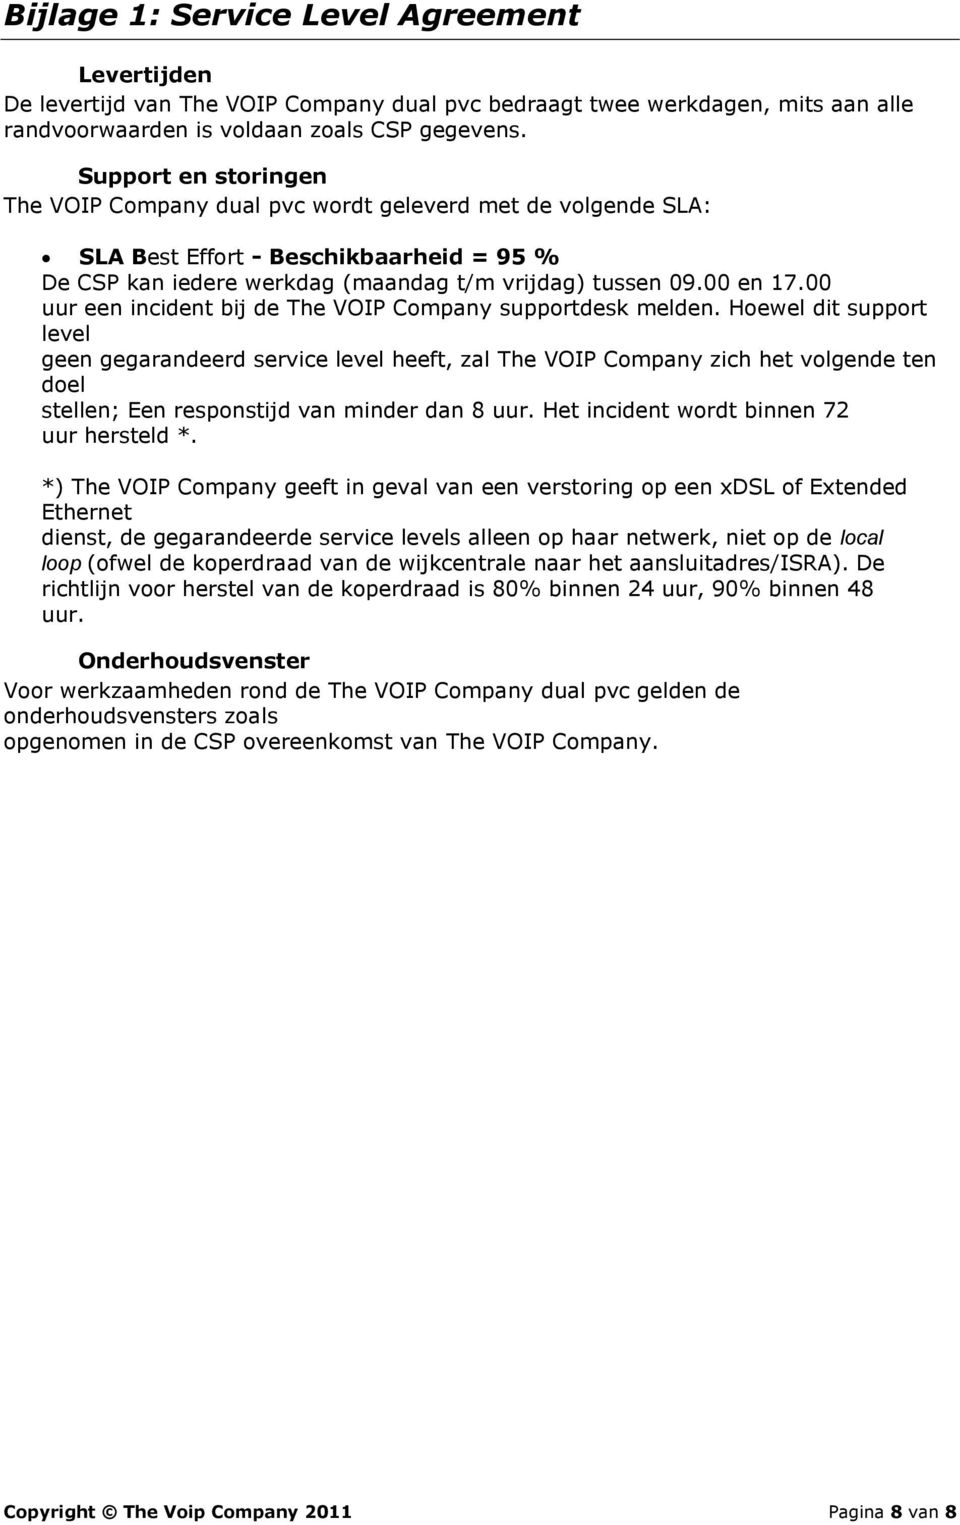 00 uur een incident bij de The VOIP Company supportdesk melden.